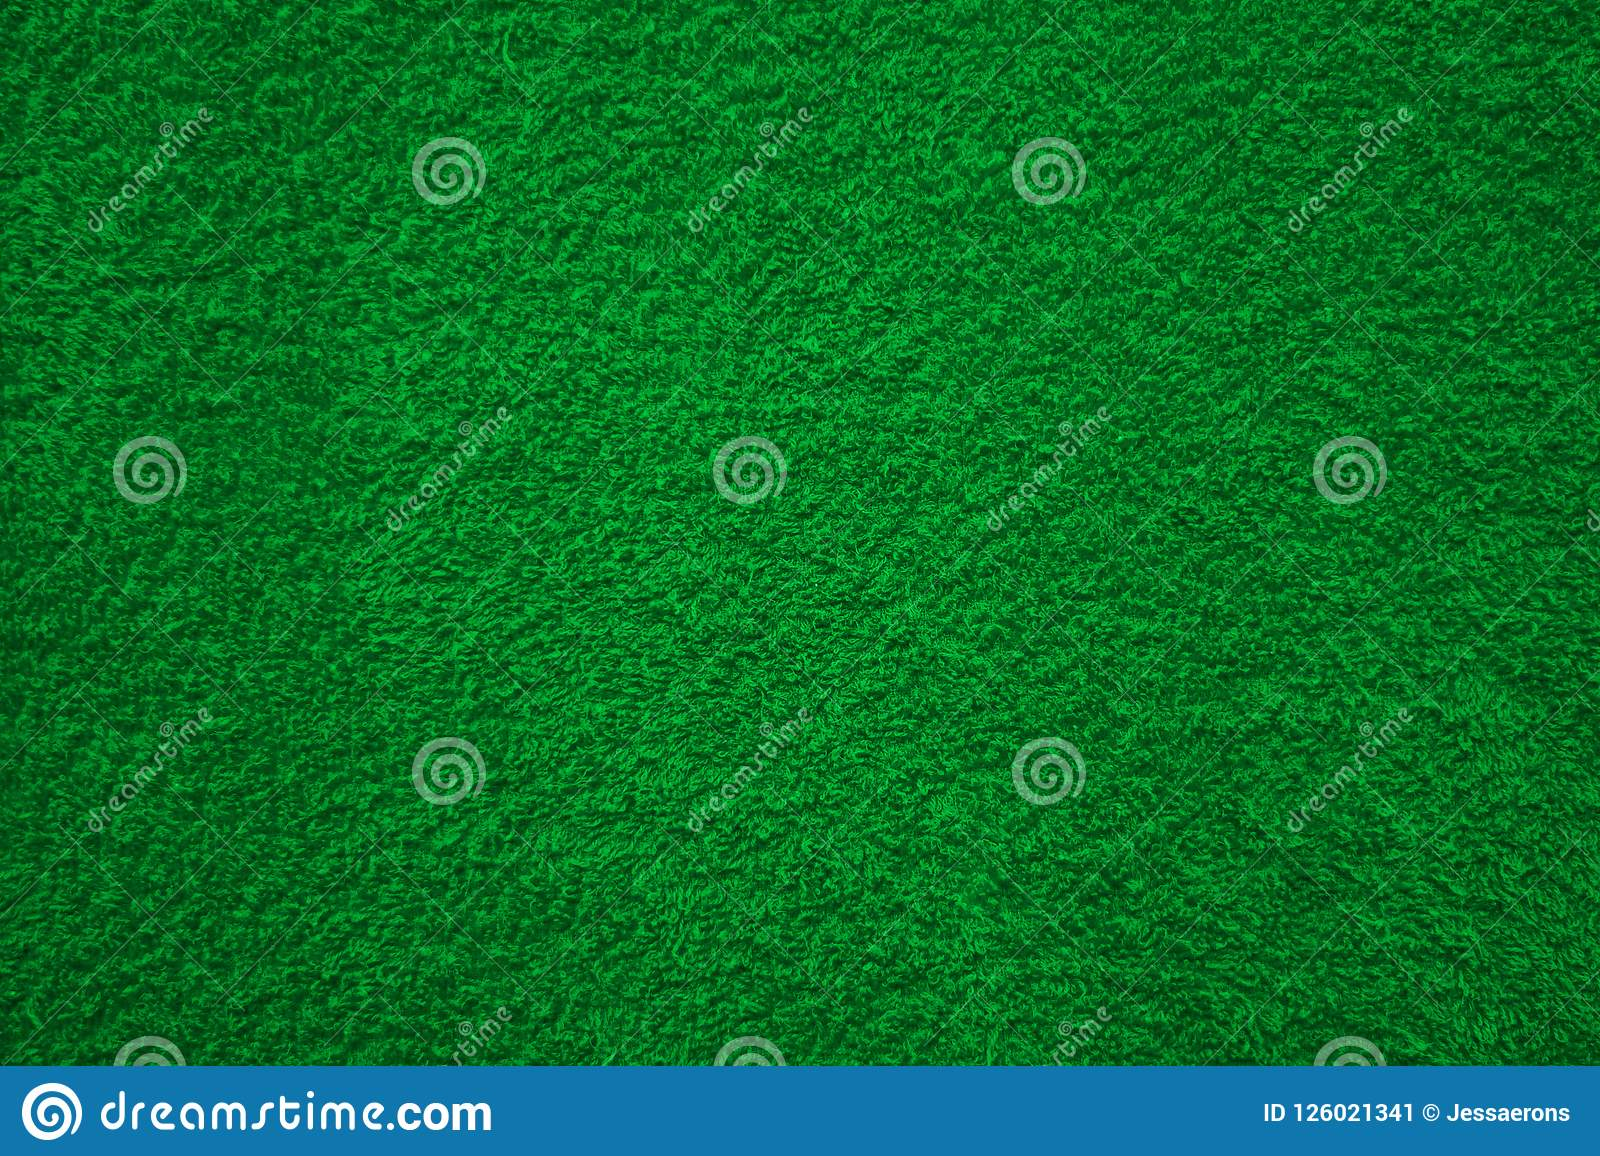 Fabric texture green carpeting